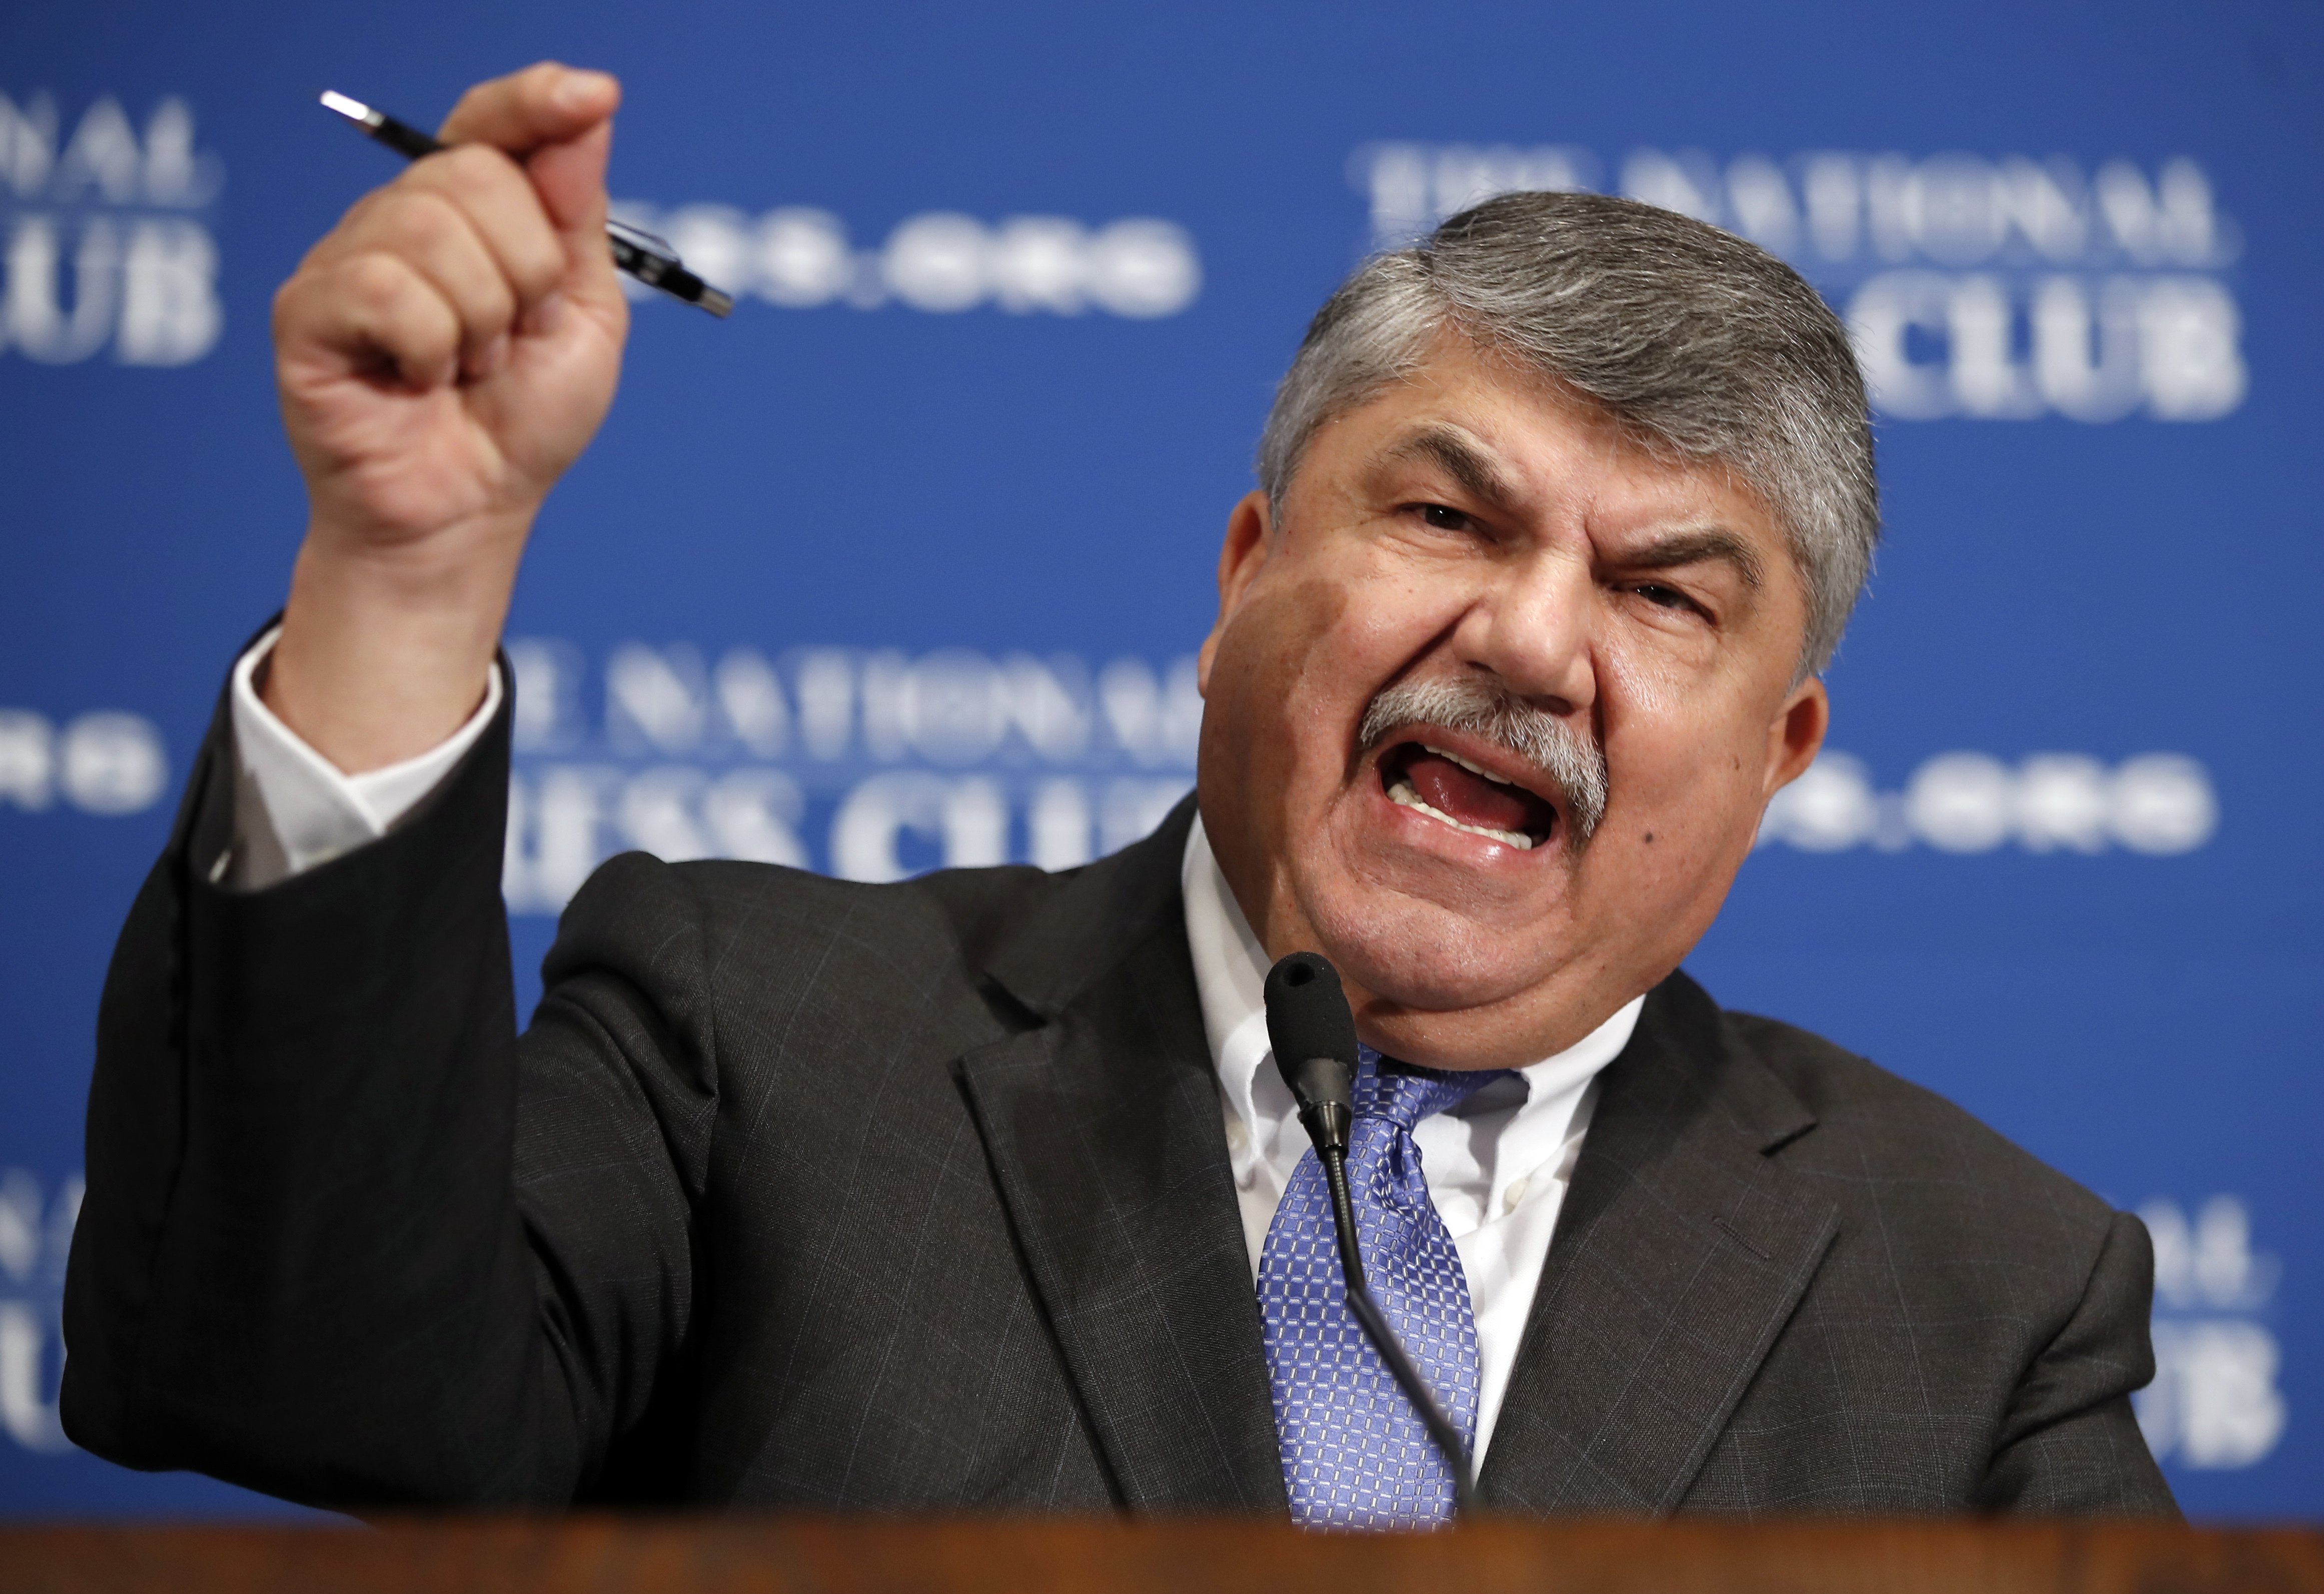 AFL-CIO leader bashes Trump's 'totally ineffective' business council after leaving it